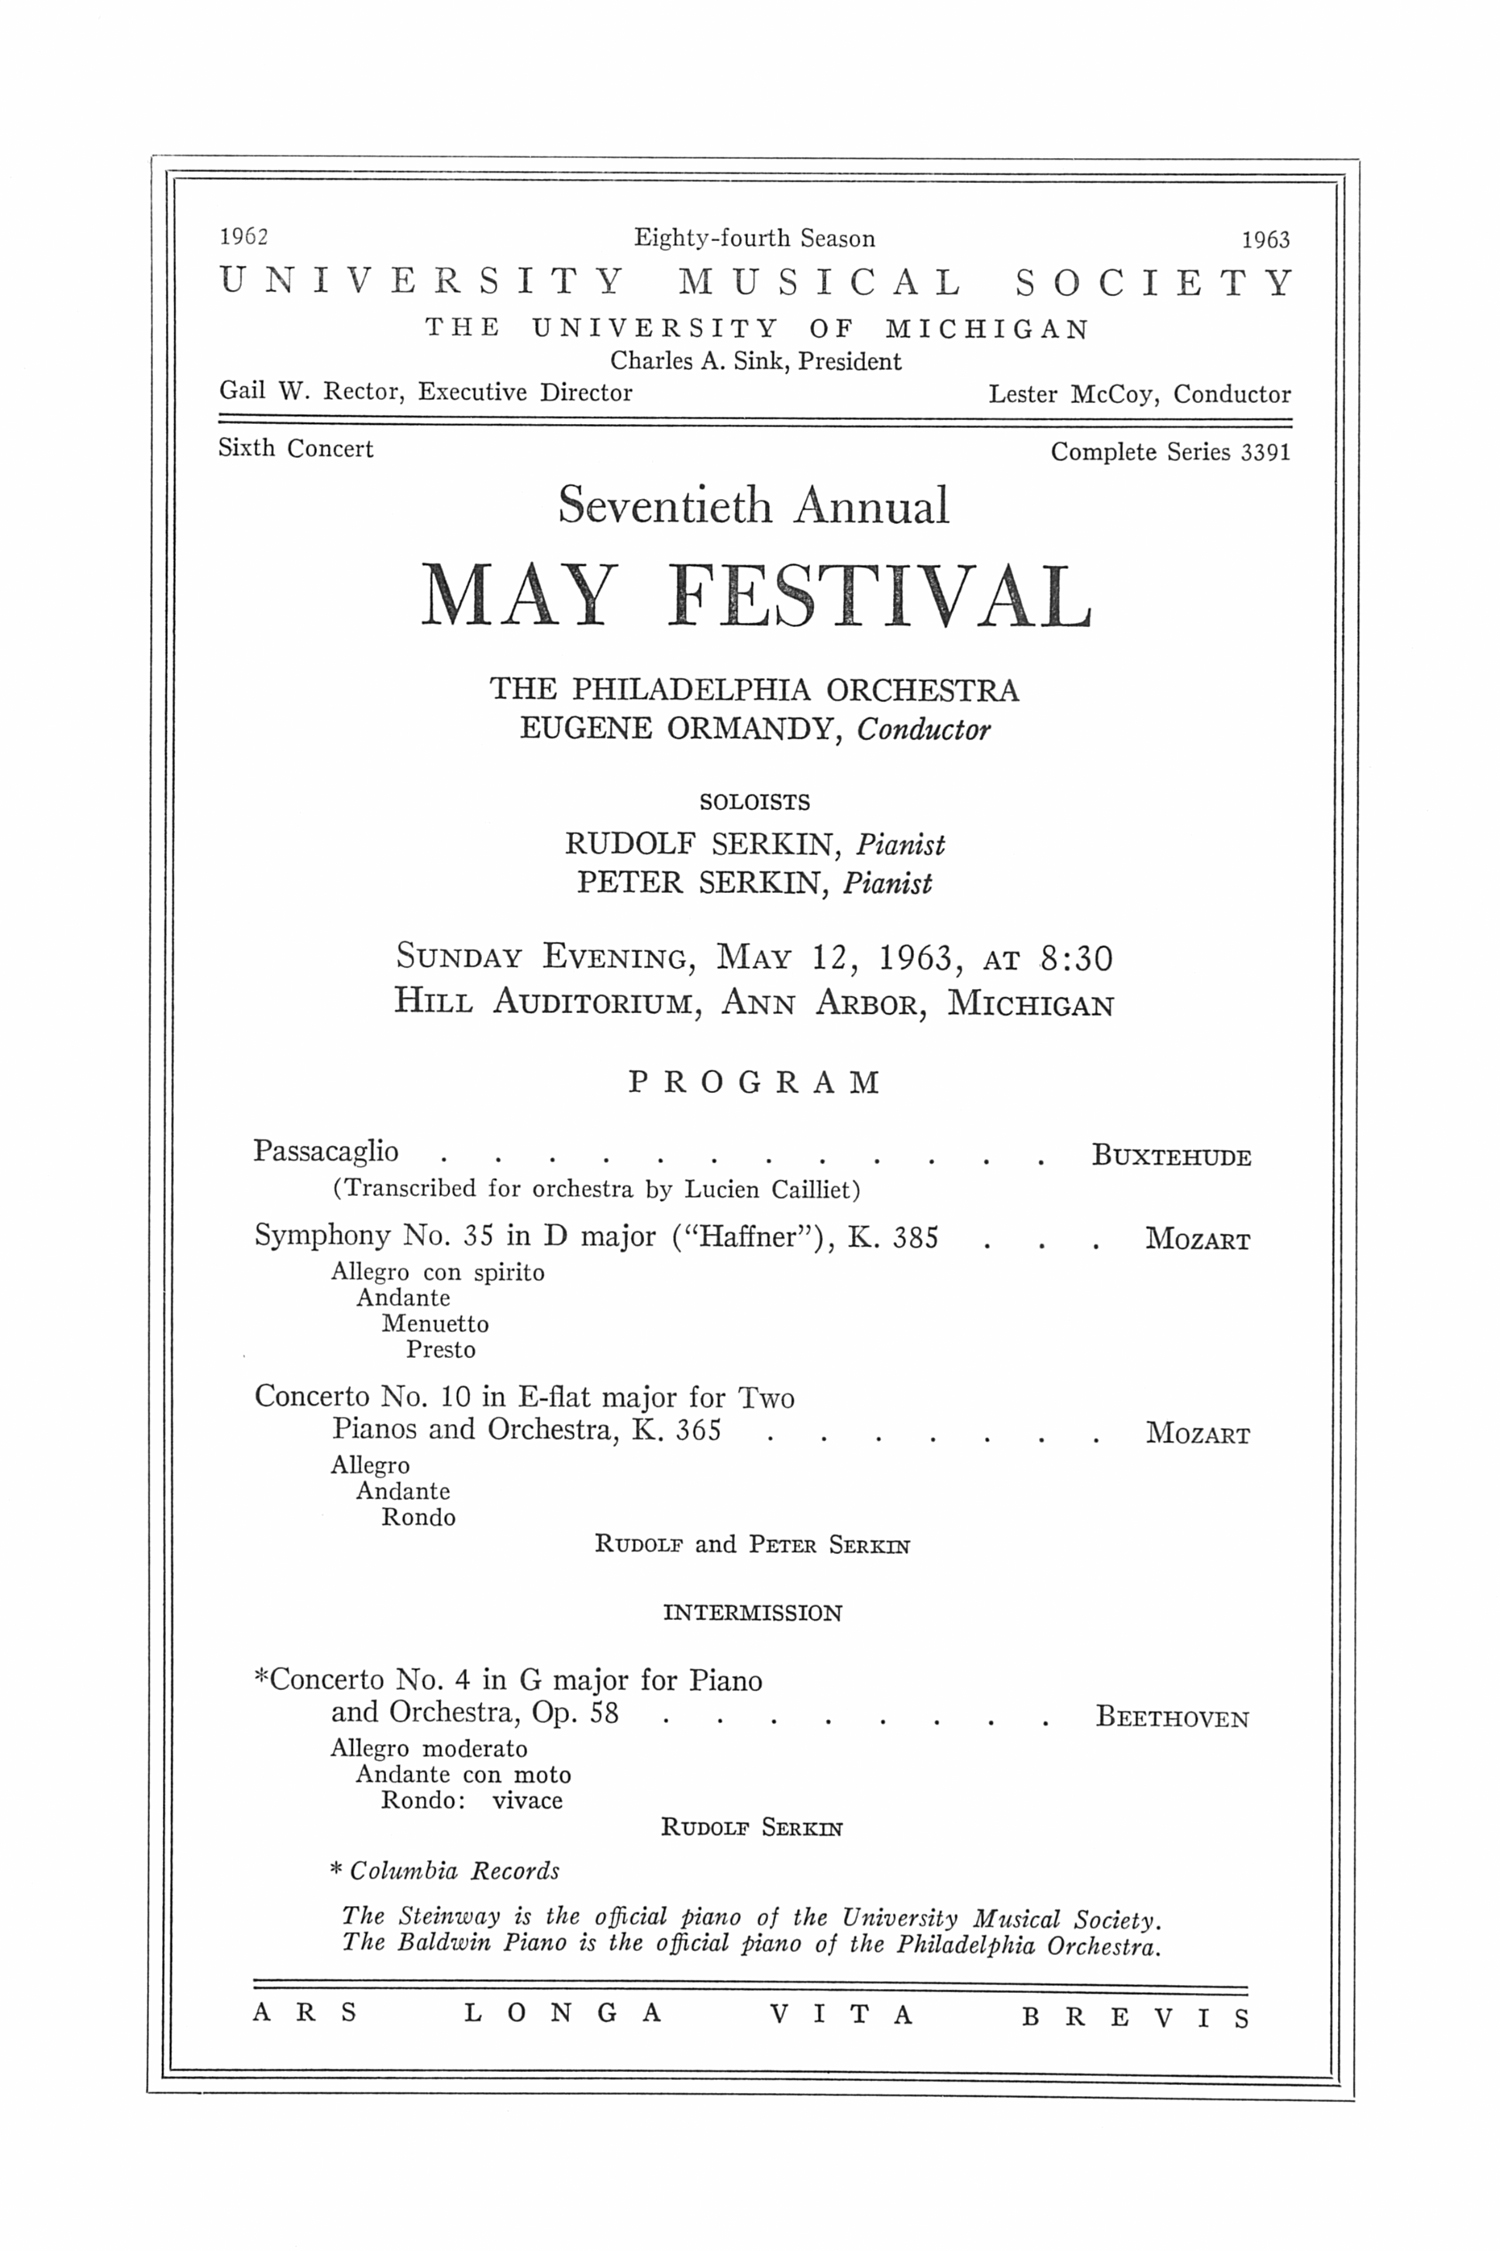 UMS Concert Program, May 12, 1963: Seventieth Annual May Festival -- The Philadelphia Orchestra image